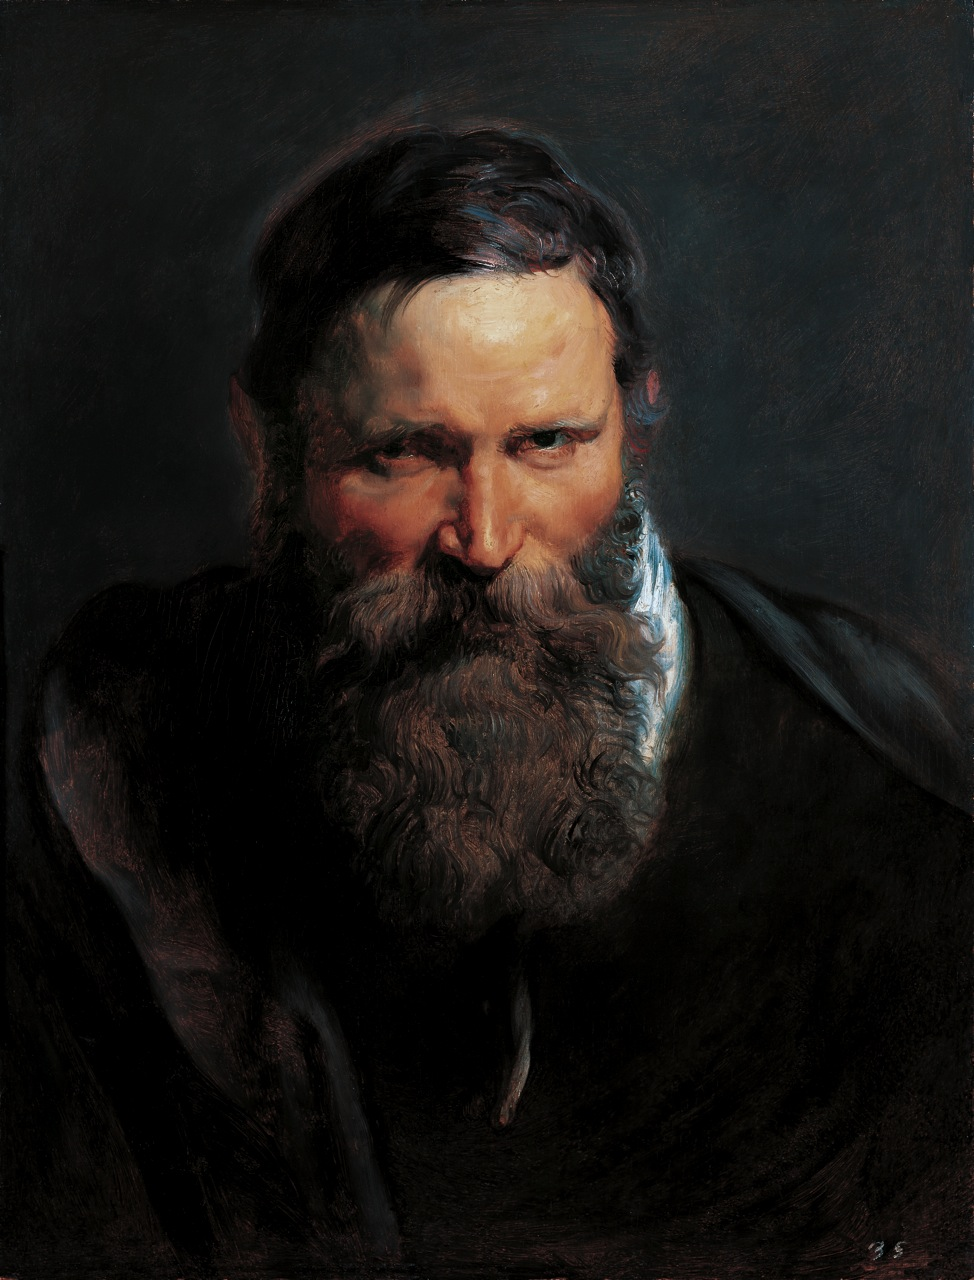 Painting Men With Beards - Peter Paul Rubens